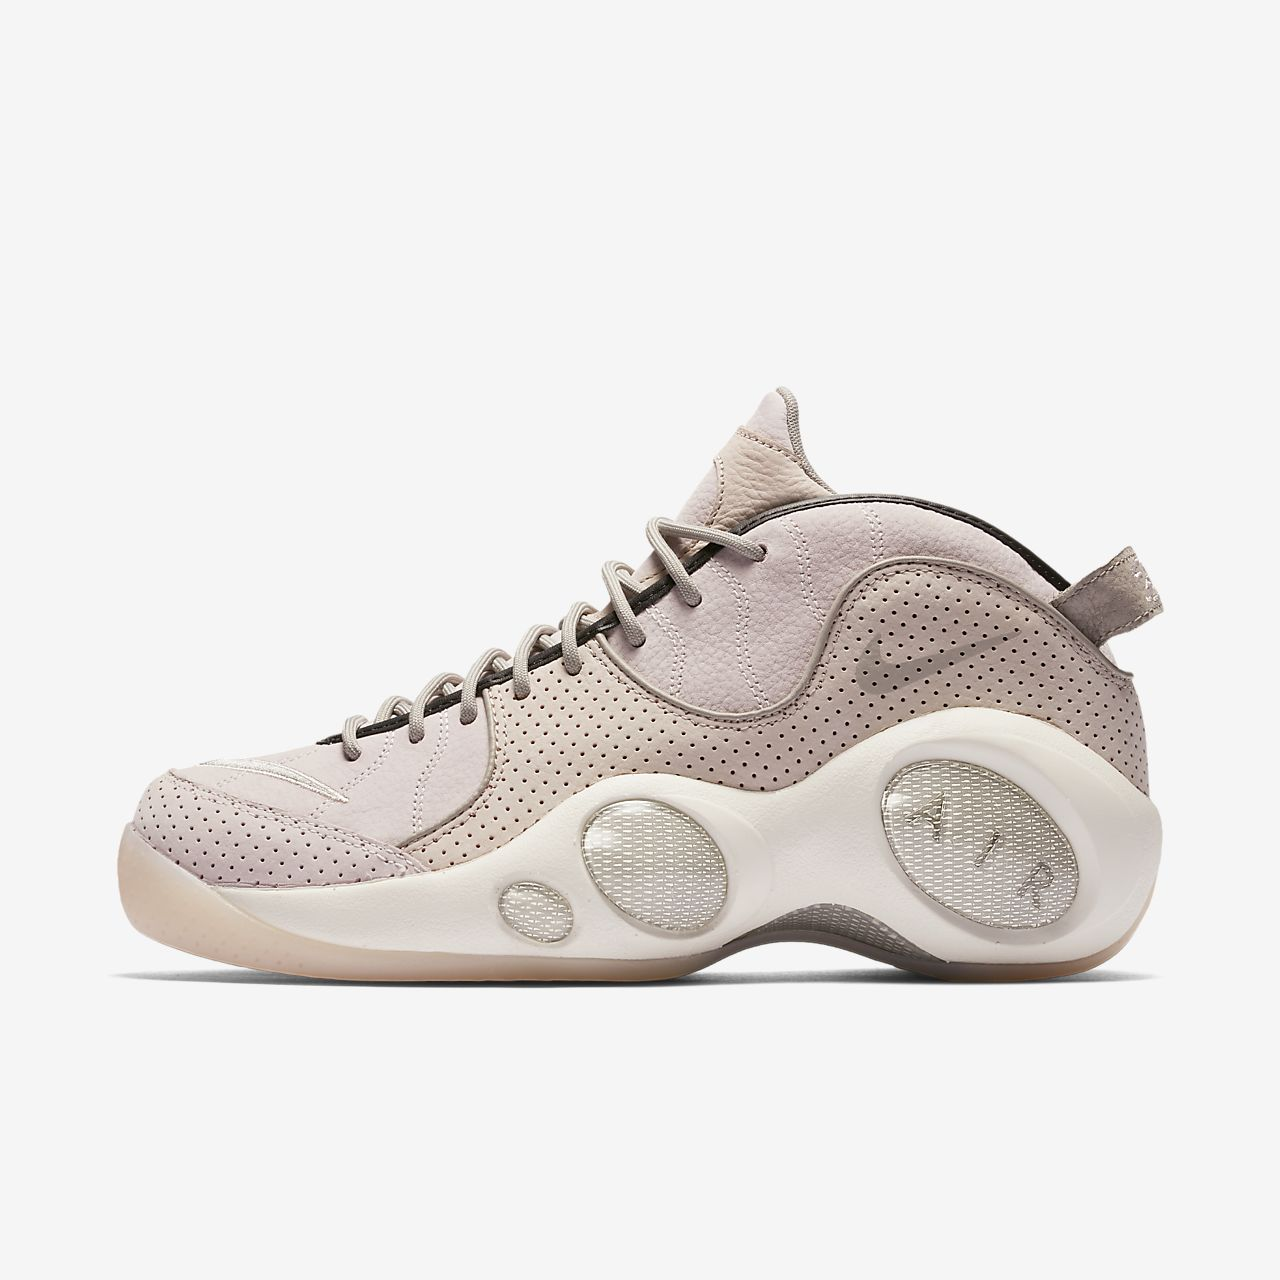 new arrival 70bb4 f39d4 Nike Air Zoom Flight 95 - sko til mænd